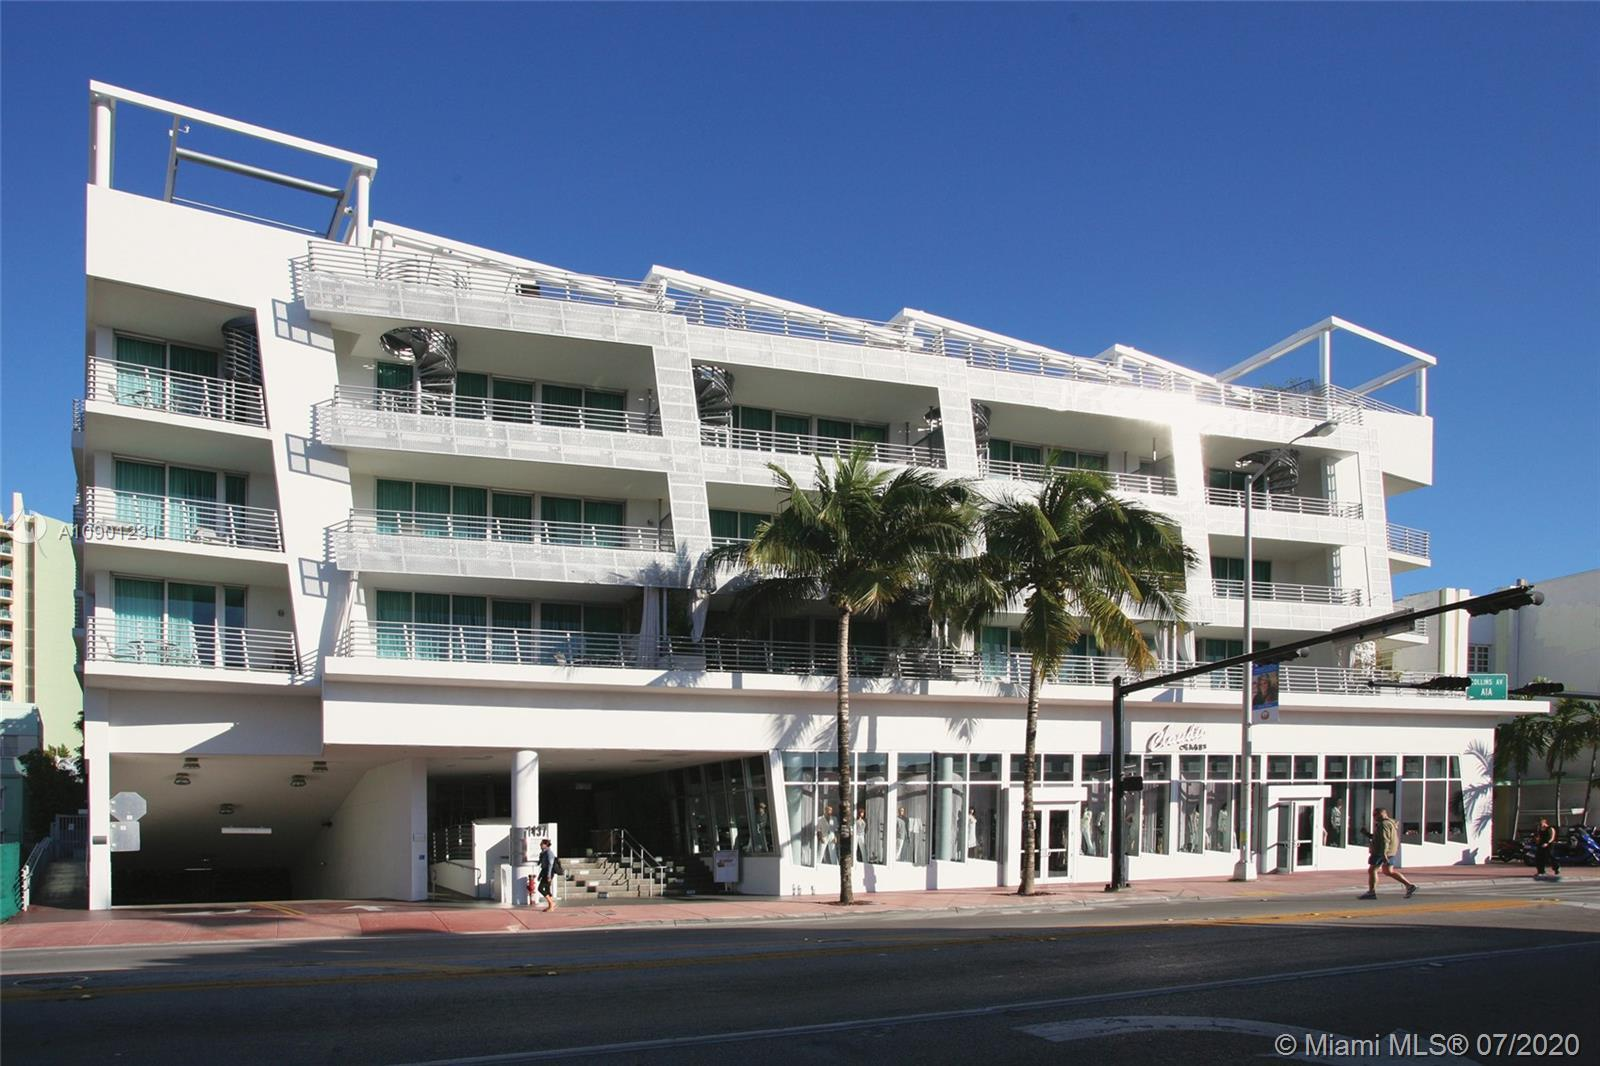 SOUTH BEACH – 15 fully furnished suites in the Z Ocean Hotel across from miles of white-sand beach o